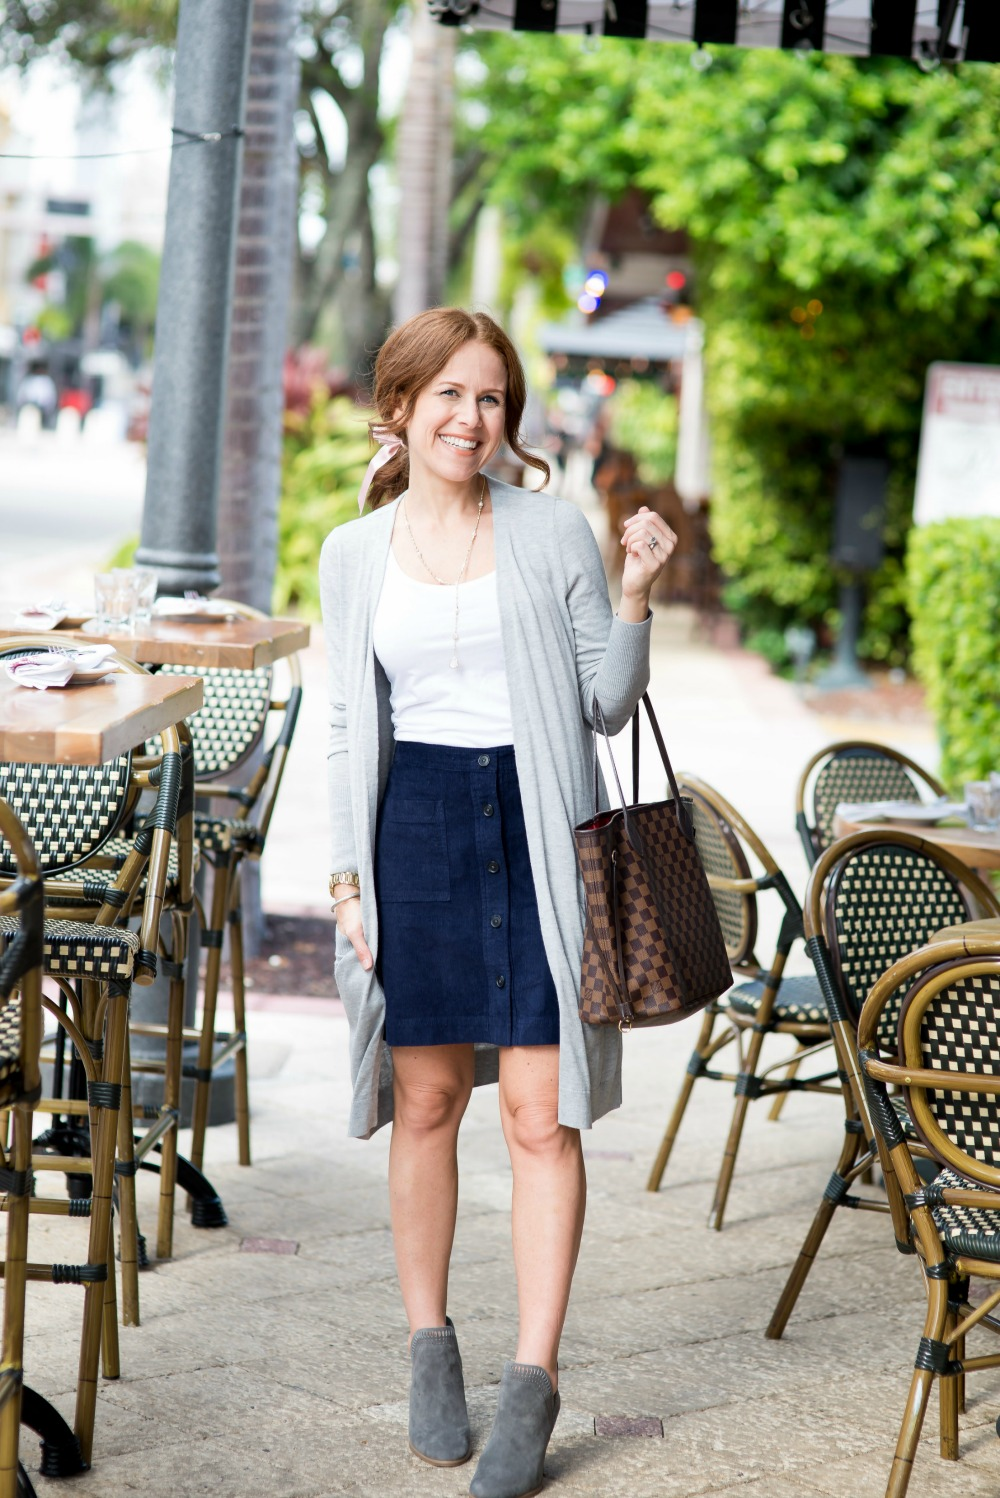 fall style: long cardigan with skirt and booties // @themodernsavvy